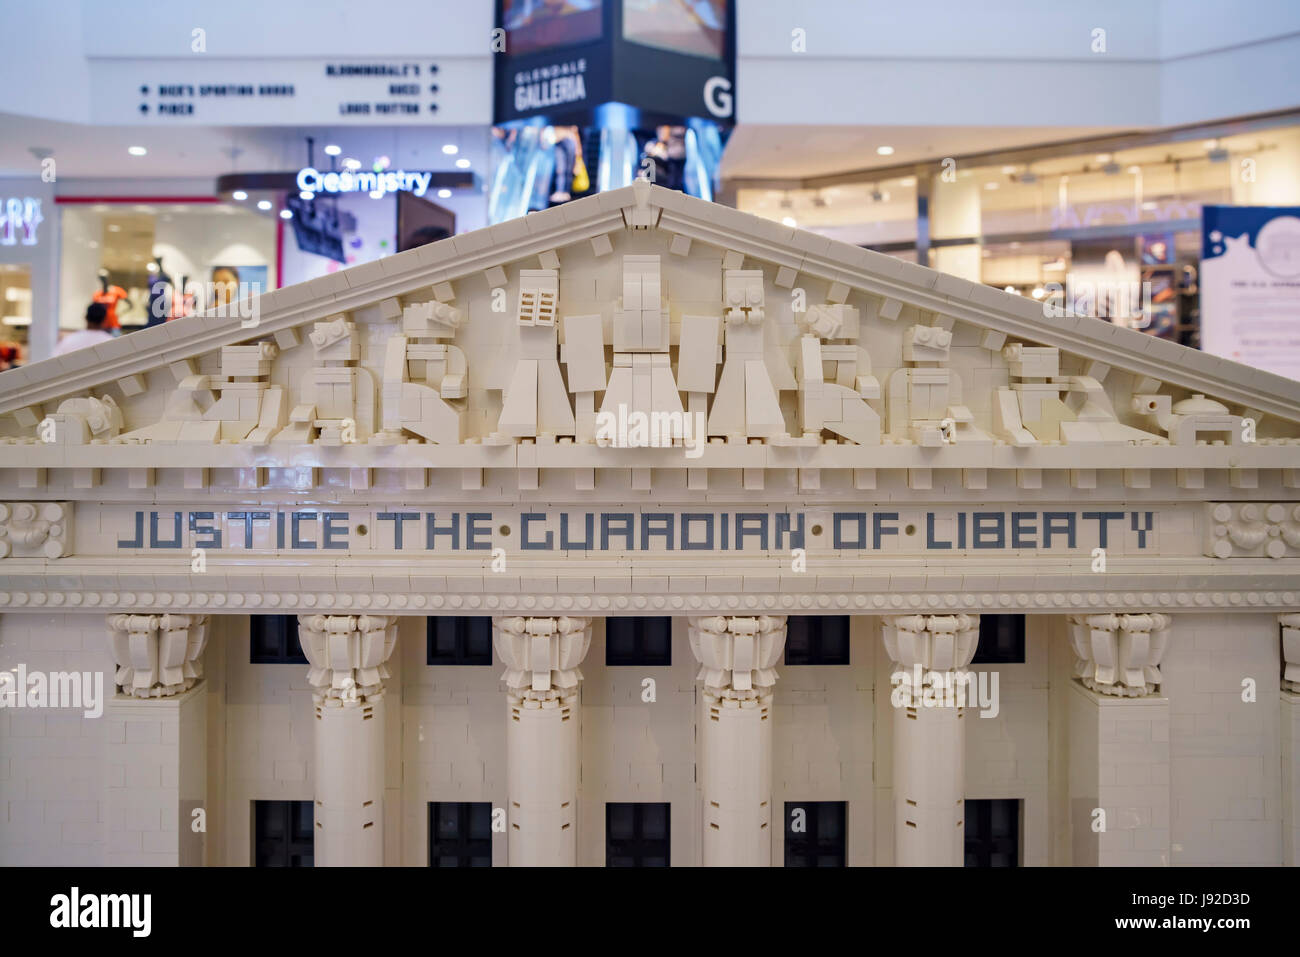 Glendale Galleria, MAY 28: The Lego Americana roadshow (The U.S. Supreme Court Building) on MAY 28, 2017 at Glendale - Stock Image